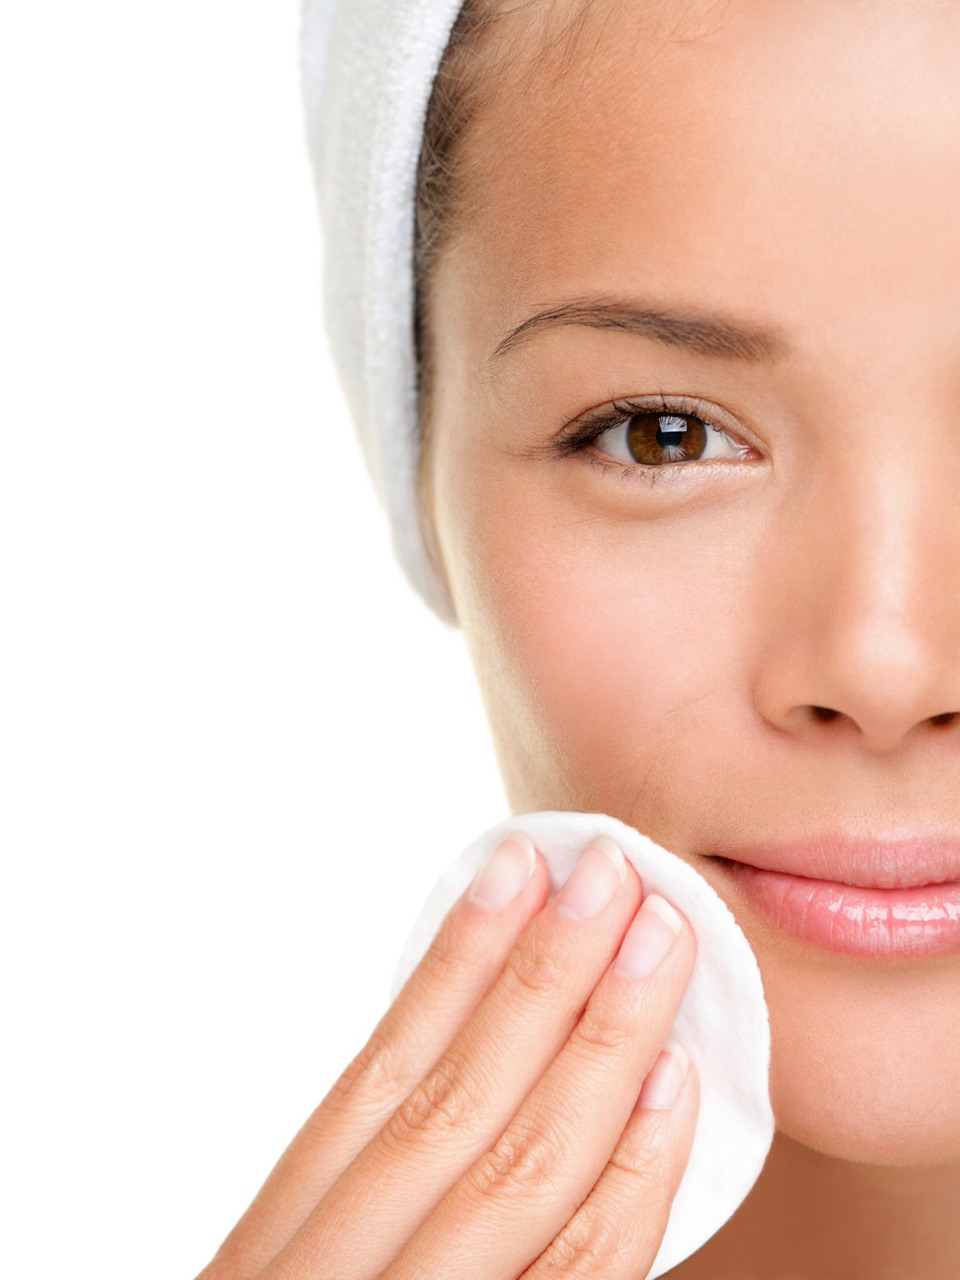 Start by applying baby oil on the cotton balls and gently rubbing it on your face.